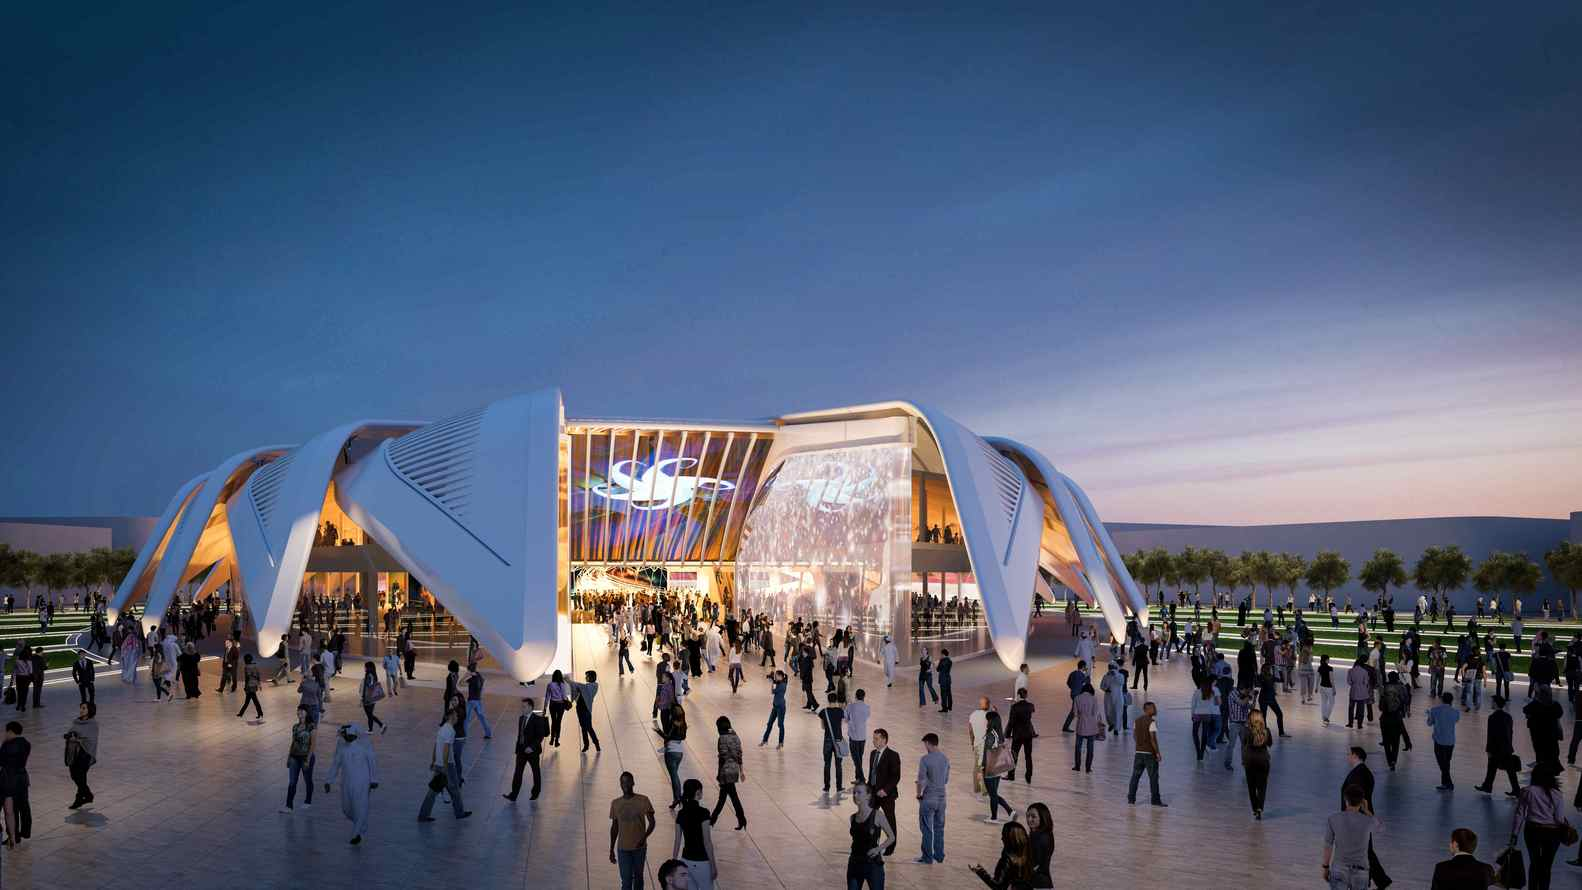 Santiago Calatrava designs UAE Pavilion for Dubai World Expo 2020 16